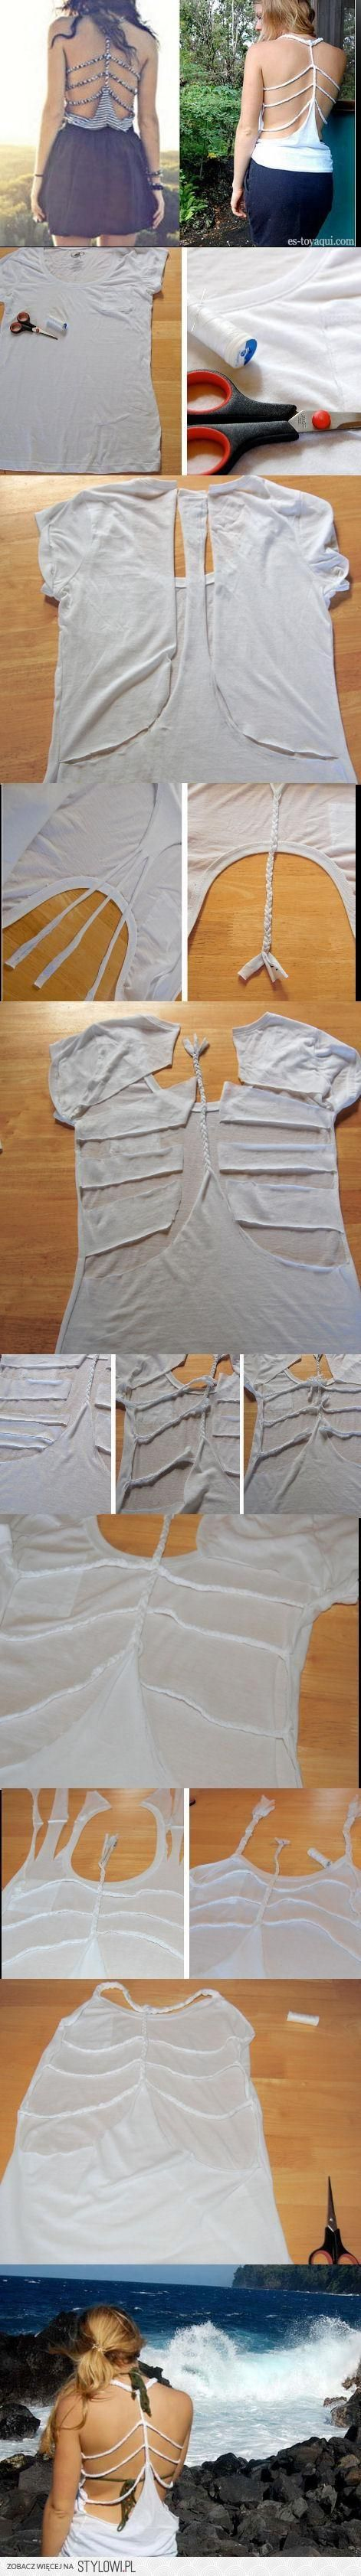 https://www.echopaul.com/ #diy DIY Clothes Refashion: DIY This would make a cool workout shirt